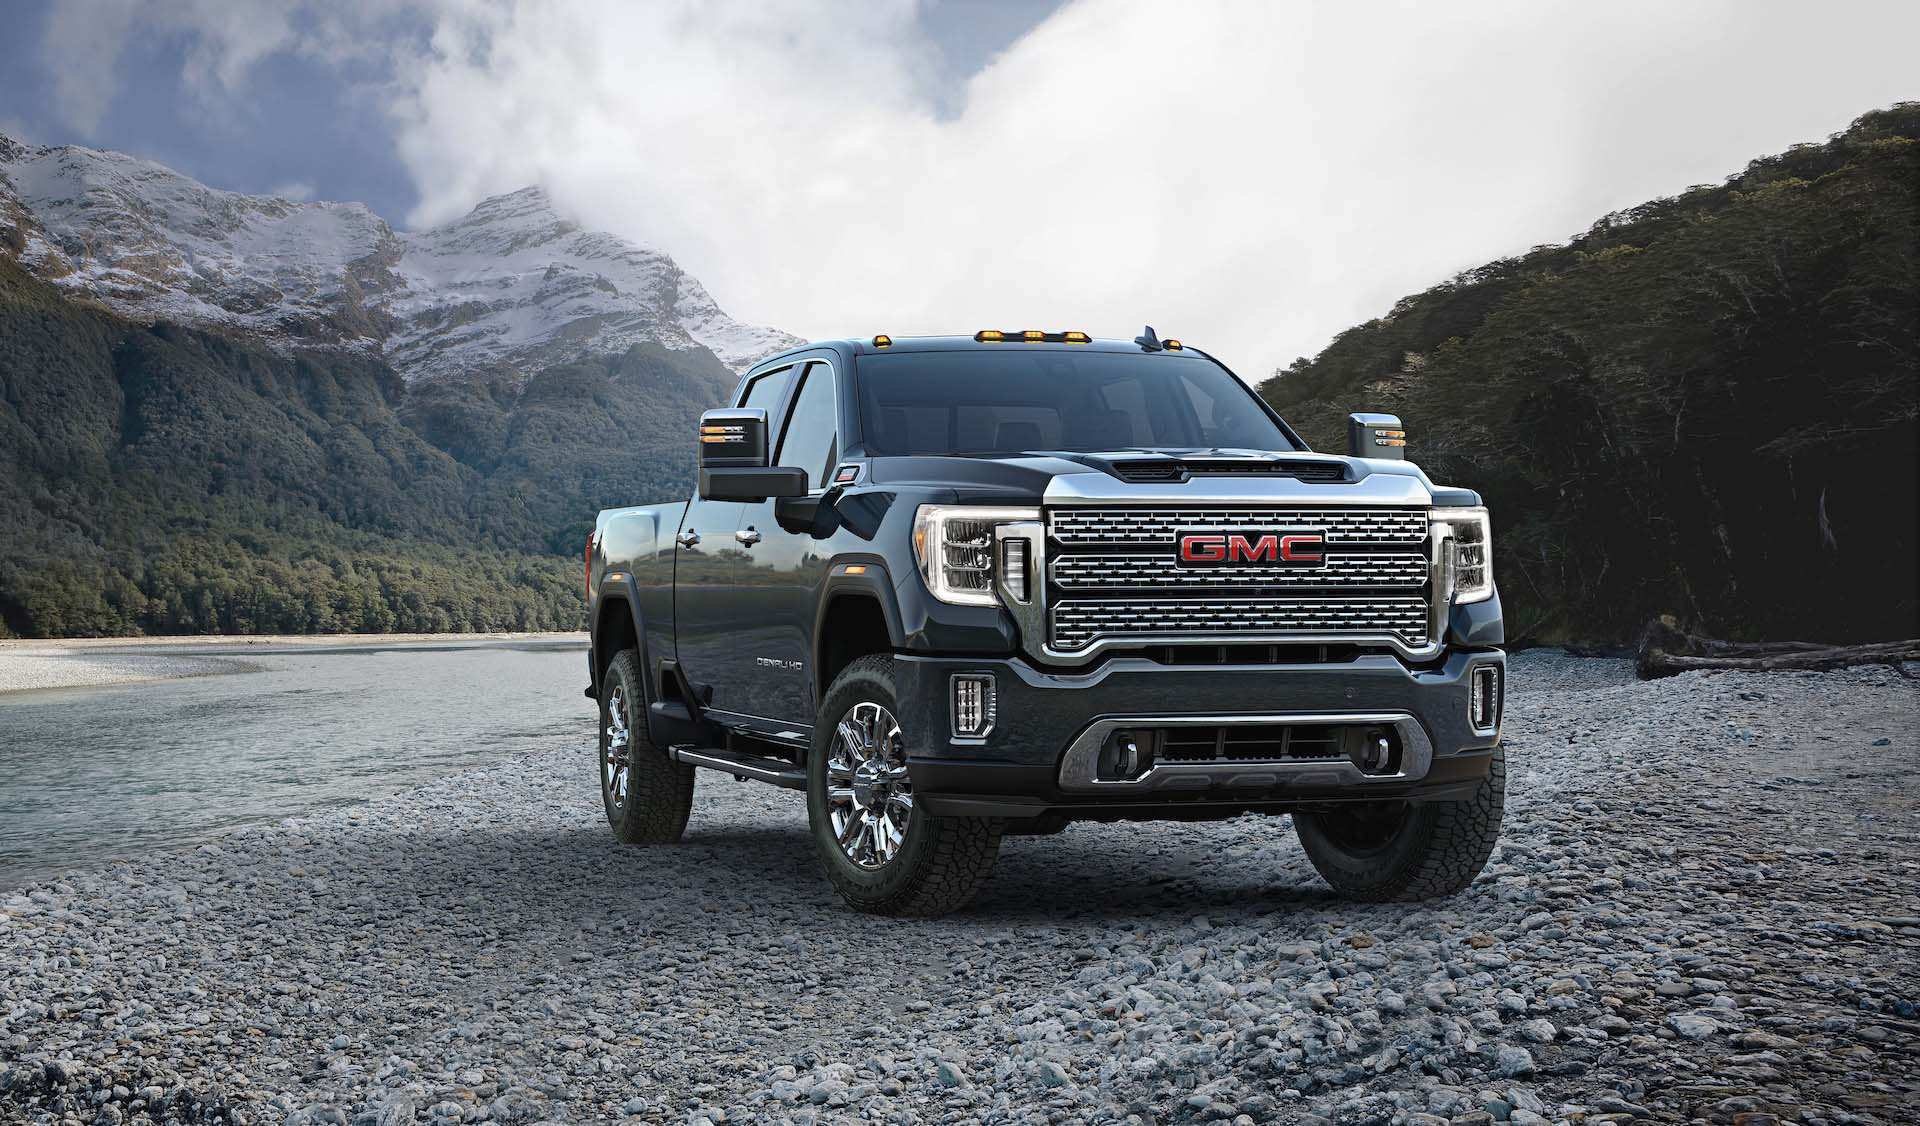 93 A GMC Hd 2020 Price Wallpaper